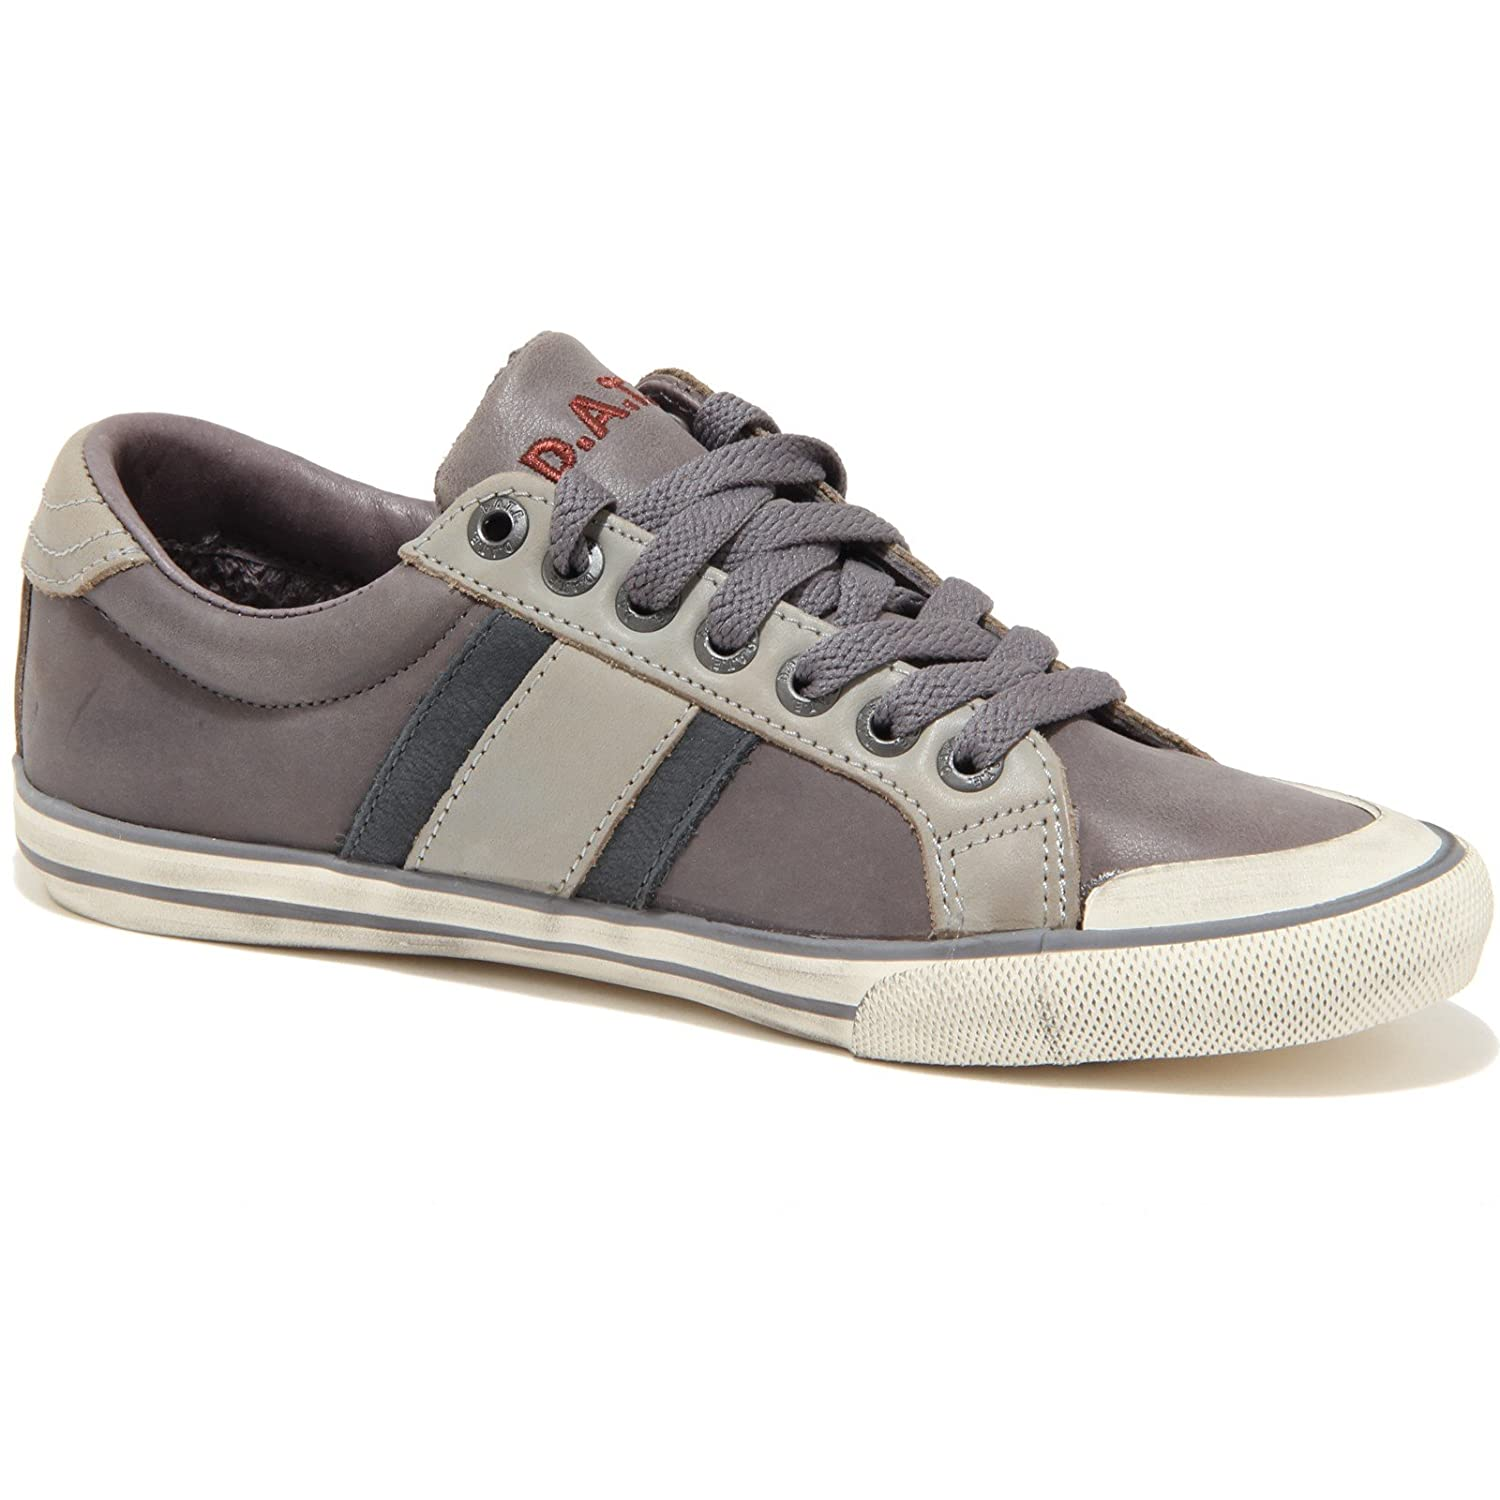 D.a.t.e. 56073 56073 56073 Turnschuhe Hill Low Multi Vintage Effect Scarpa damen schuhe damen 0d1e1b